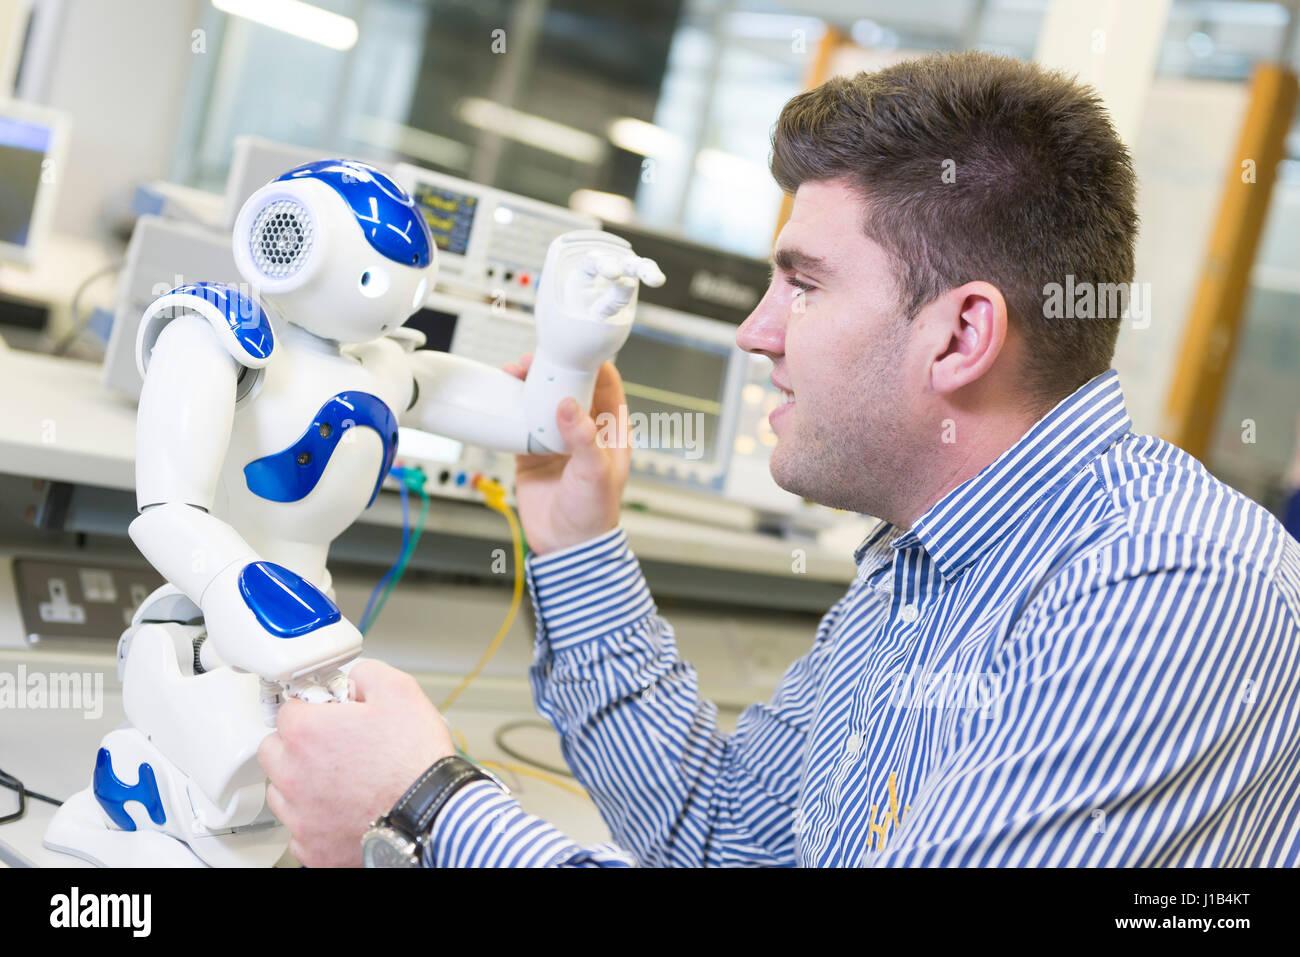 A Science Laboratory With A Scientist Investigating Robotics Stock